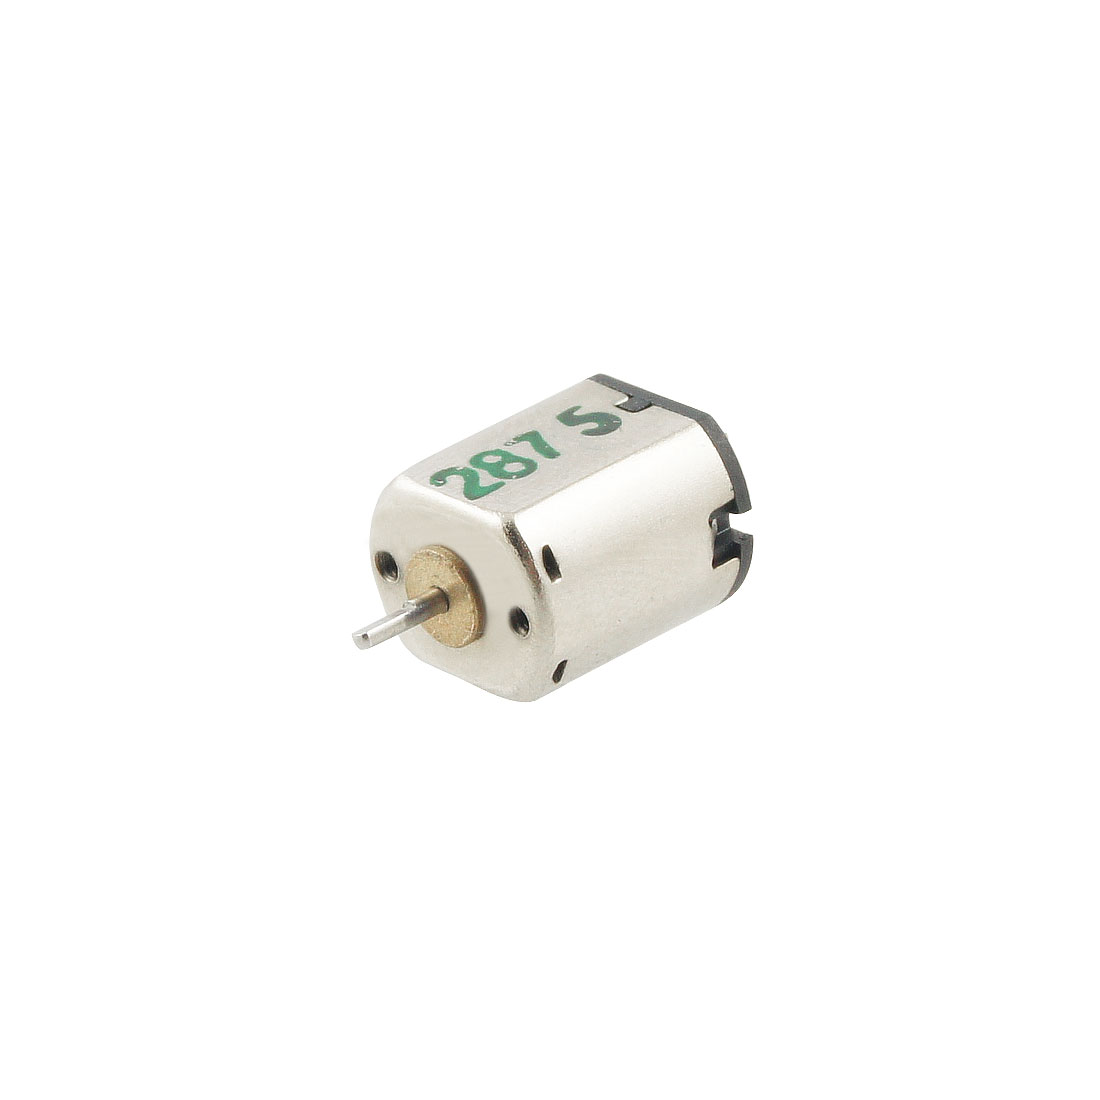 1.5V DC 5000 RPM Magnetic Mini Motor for Electronic DIY Toy